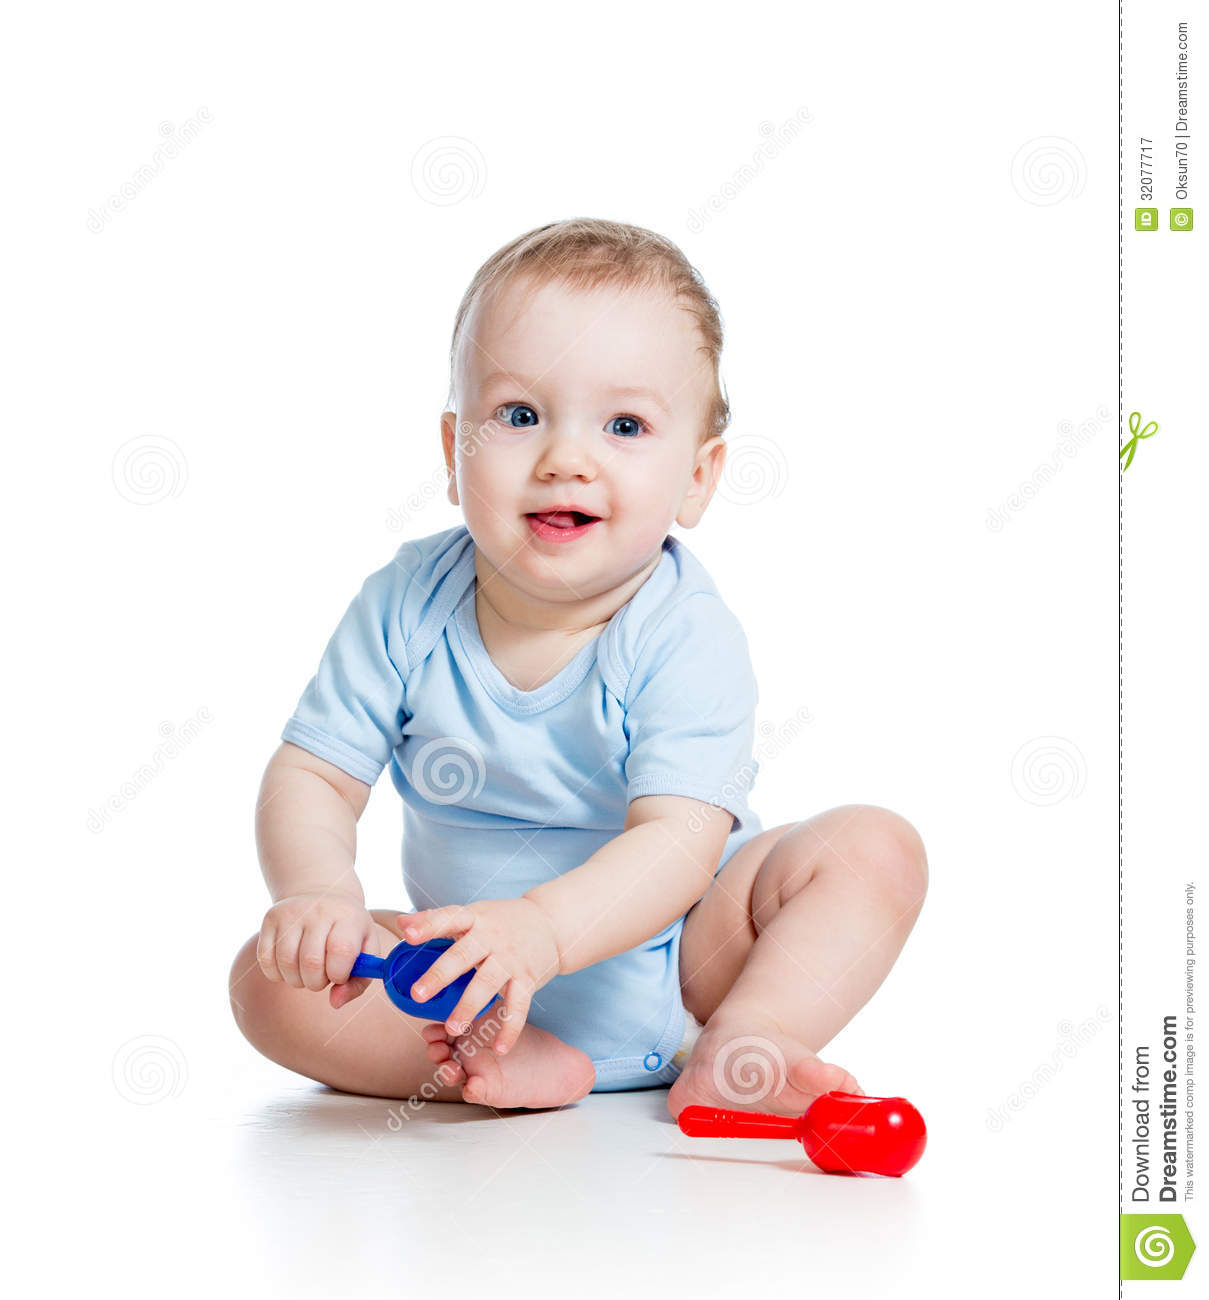 Musical Toys For Toddlers Boys : Smiling boy baby playing royalty free stock photography